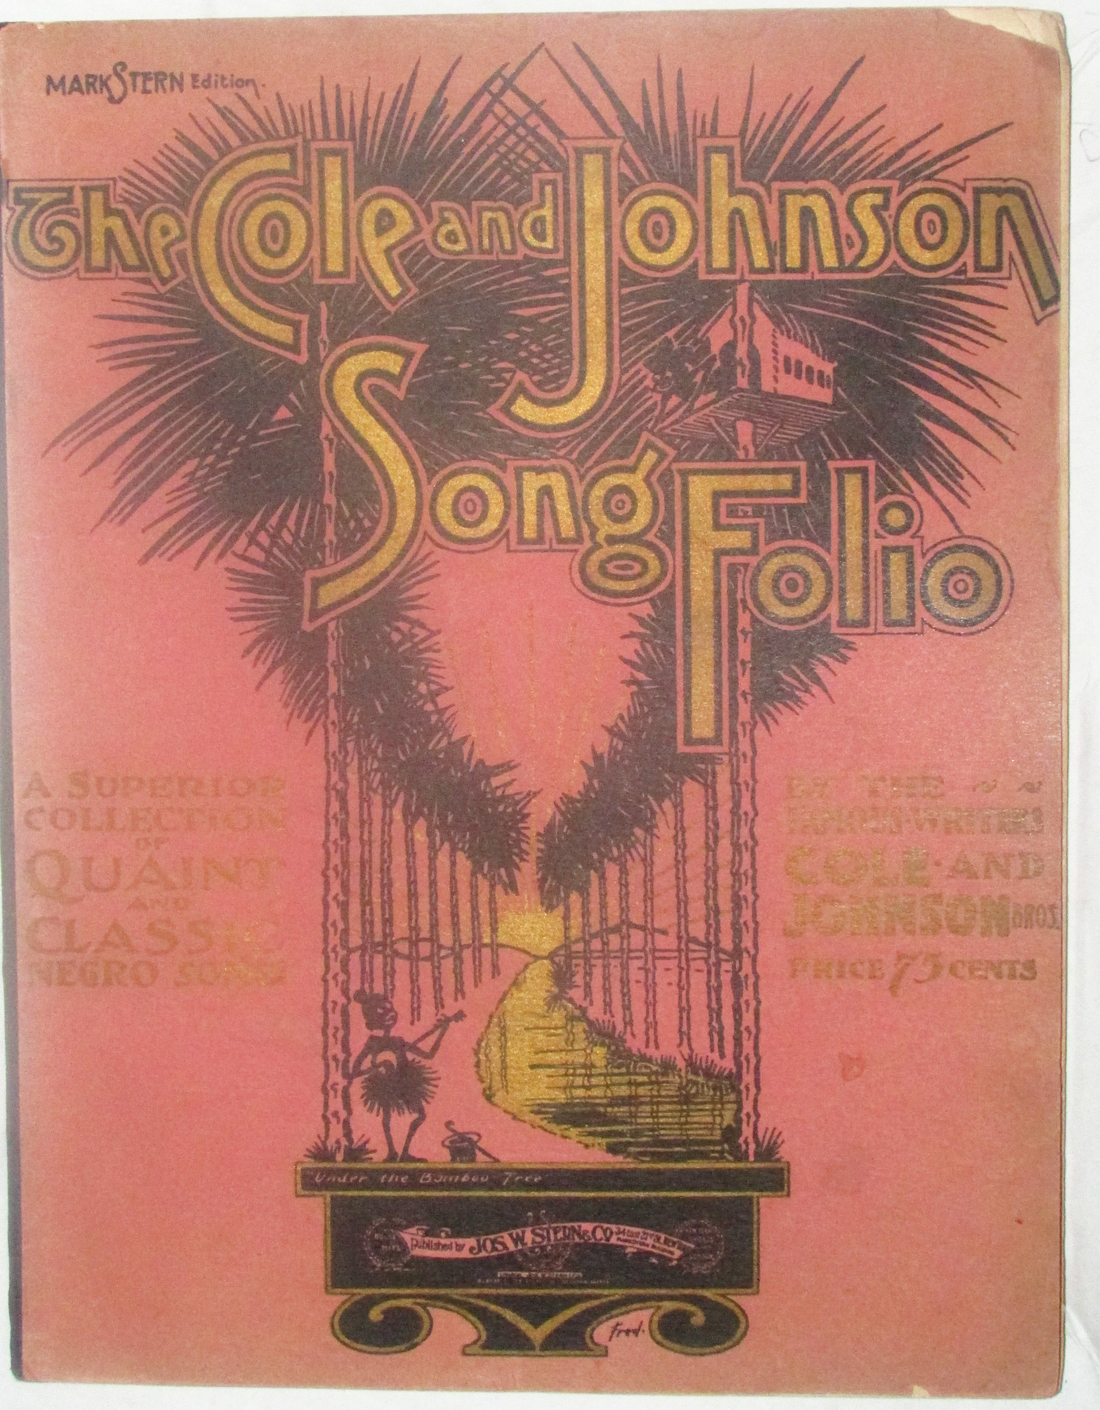 Image for The Cole and Johnson Song Folio